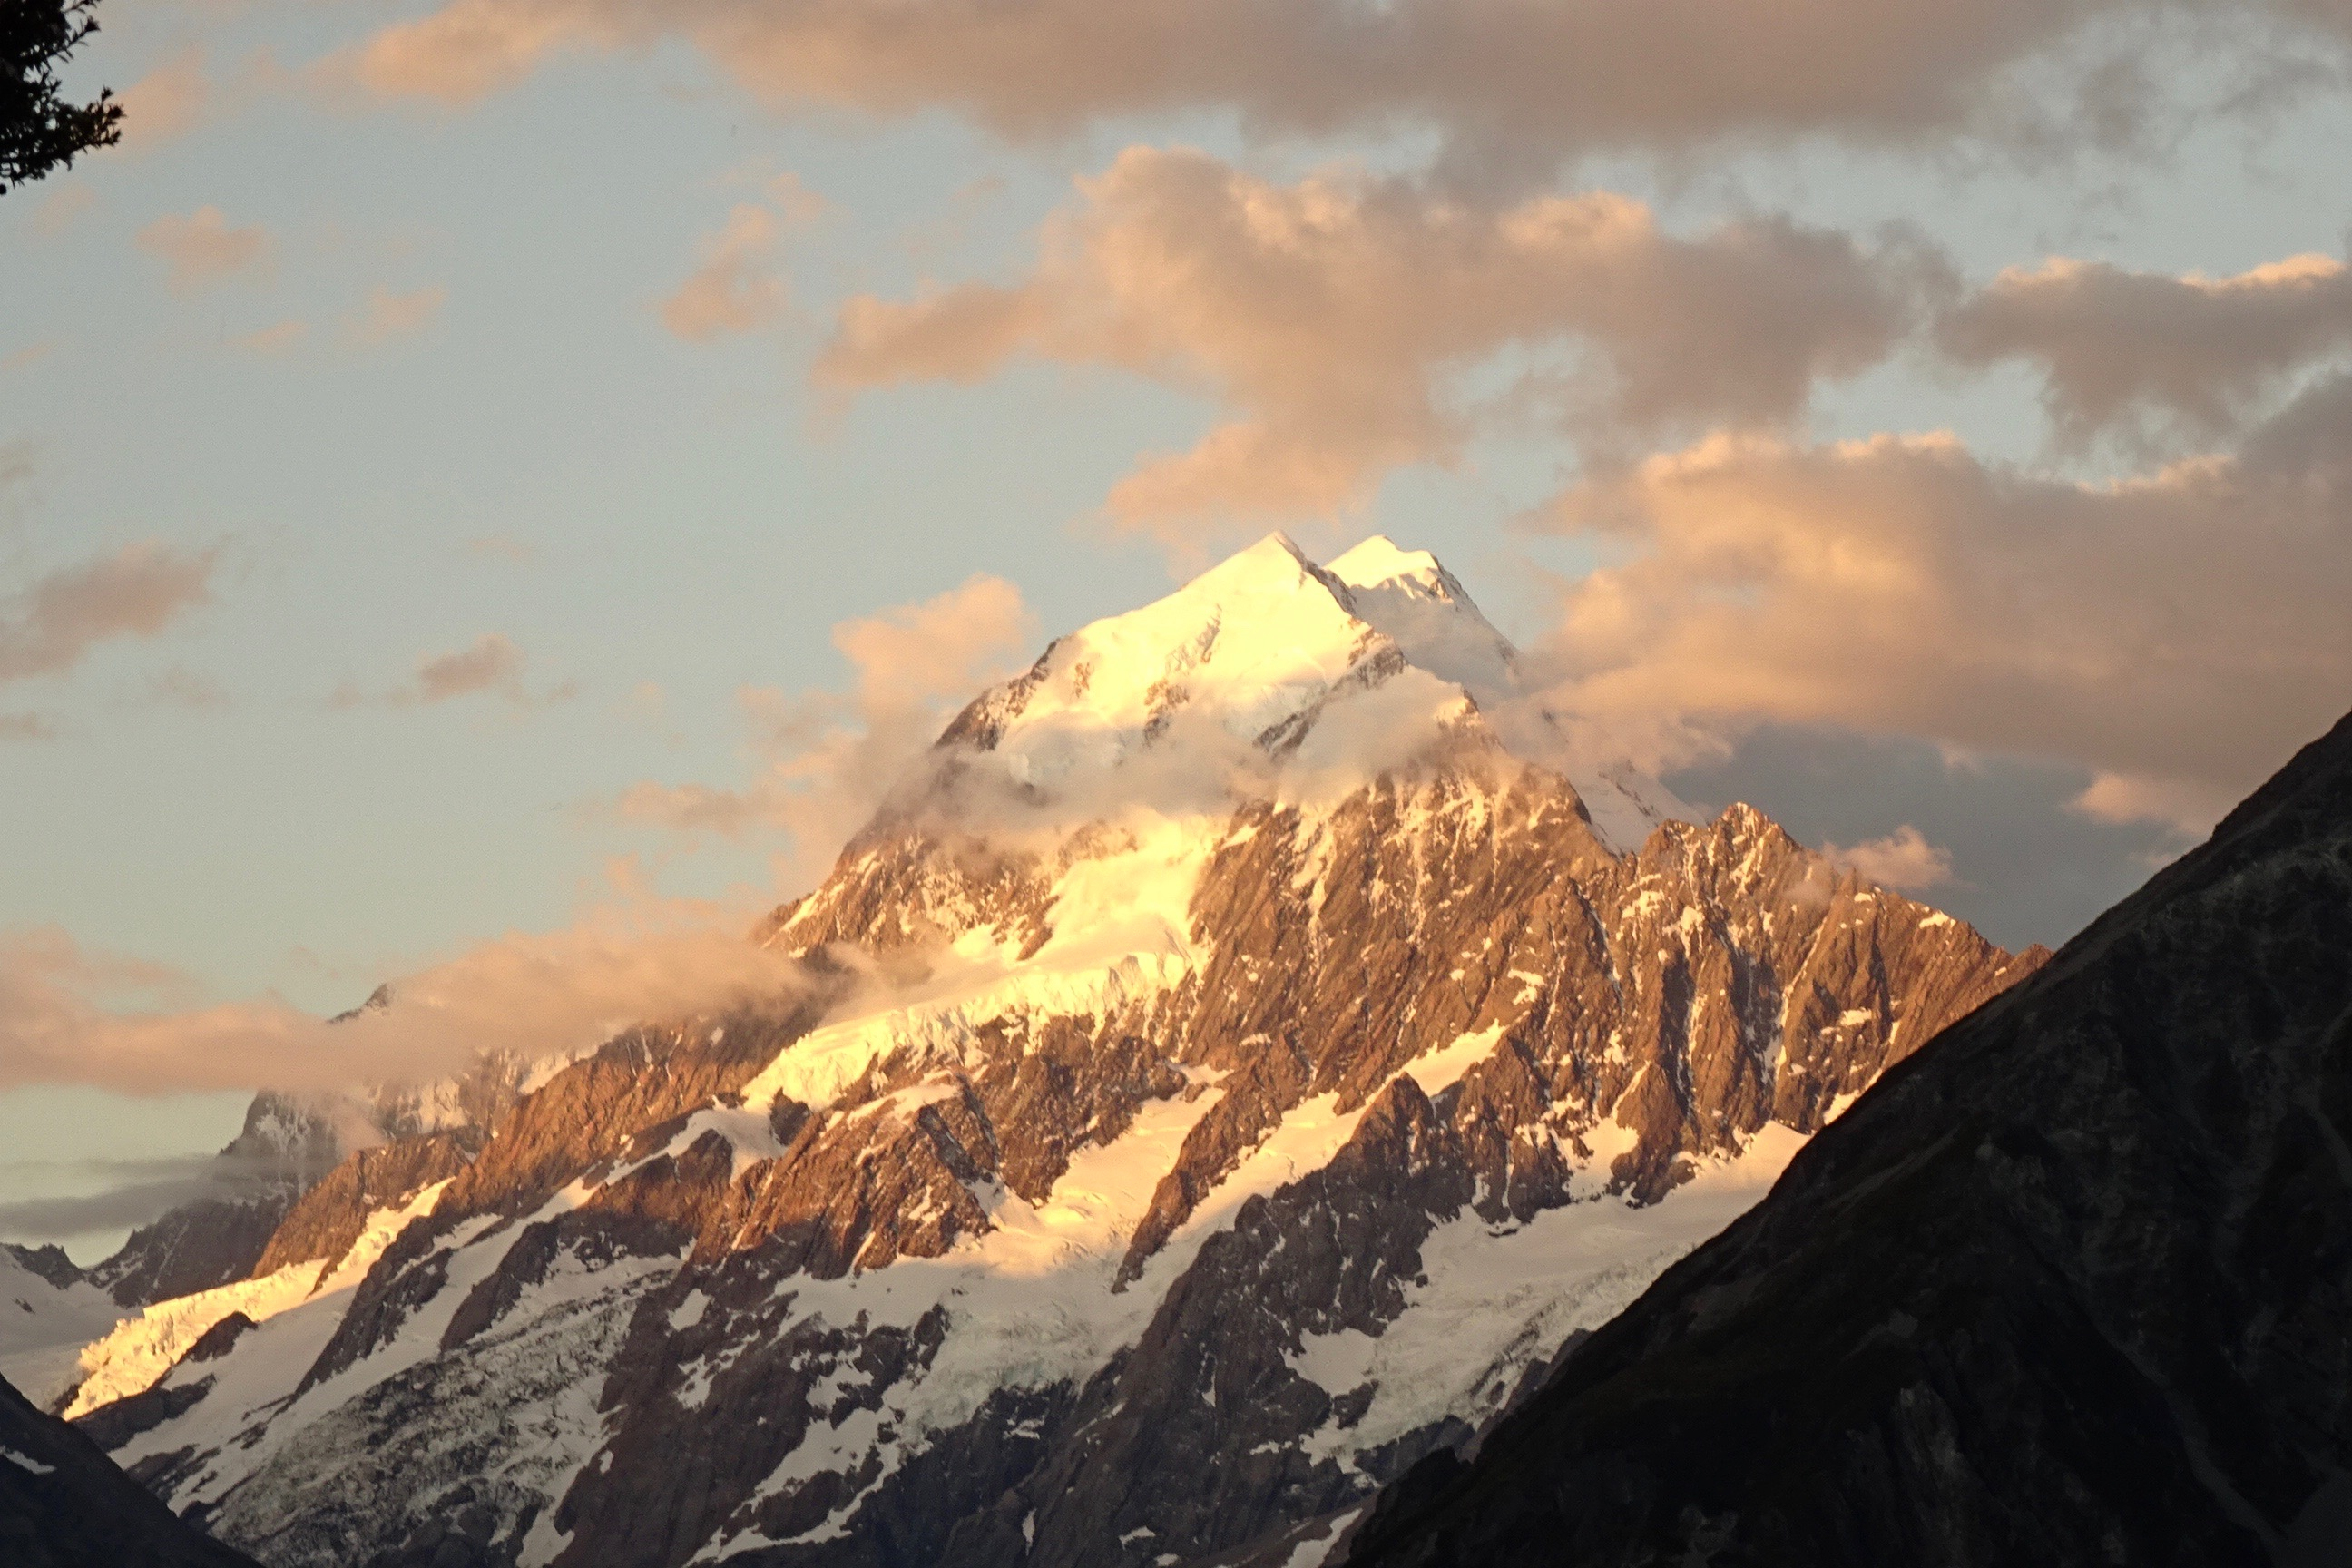 Sunset in Aoraki/ Mount Cook National Park - spinthewindrose.com